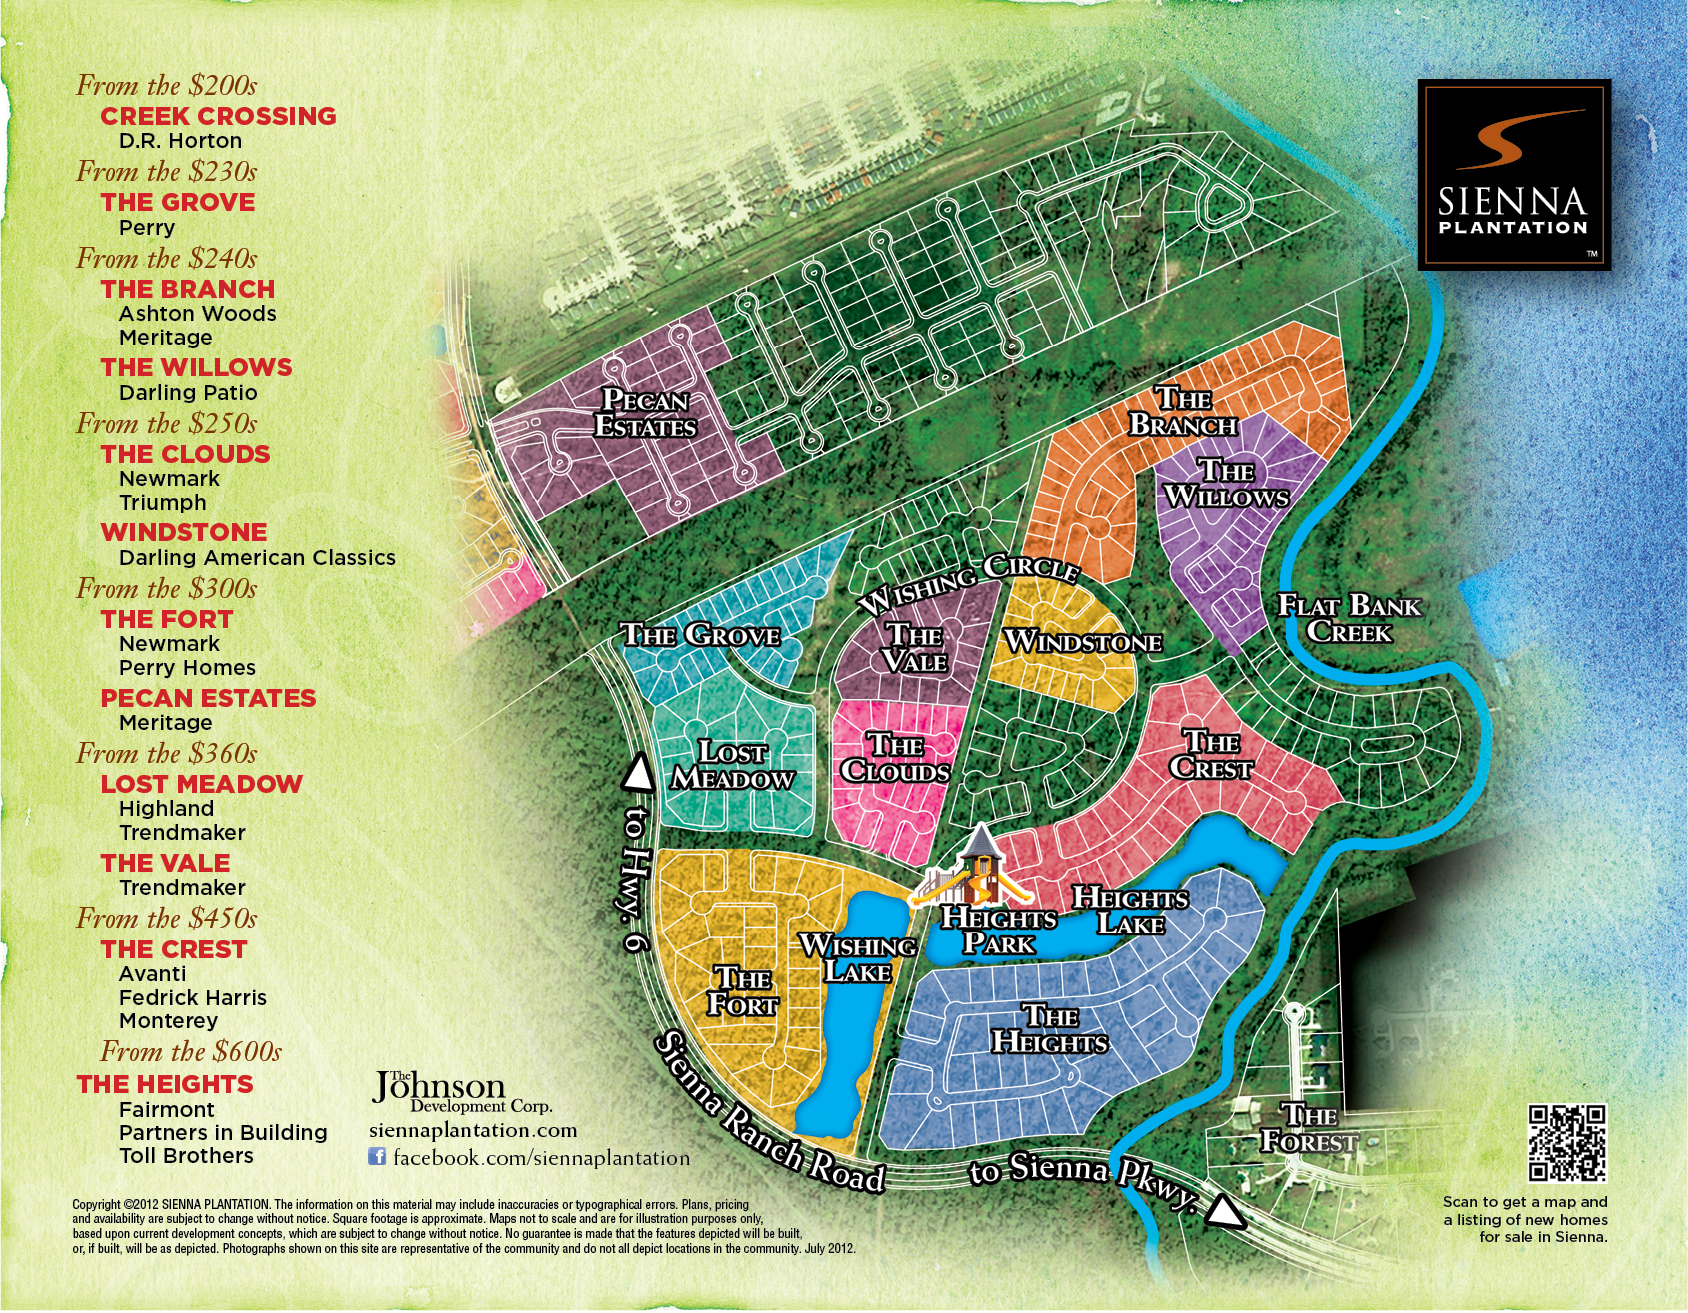 Sienna Plantation | Homes For Sale In A Missouri City Community - Sienna Texas Map